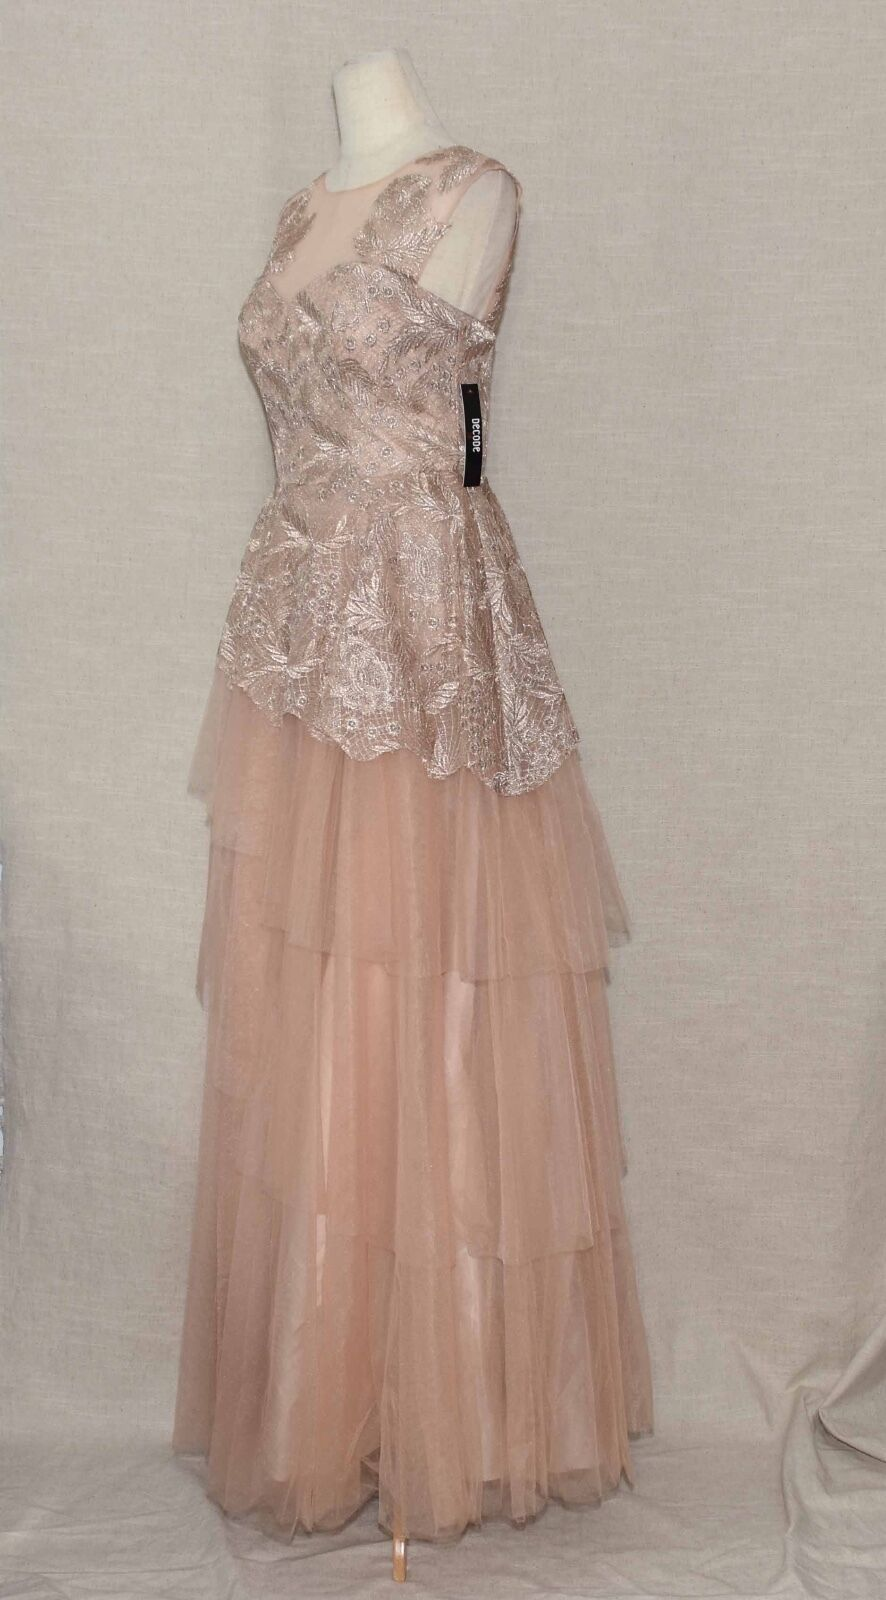 Decode 1.8 Lace Ball Gown  300 NWT ModCloth ModCloth ModCloth Awakening Of elegance Sz 12 Beige b5a8ee